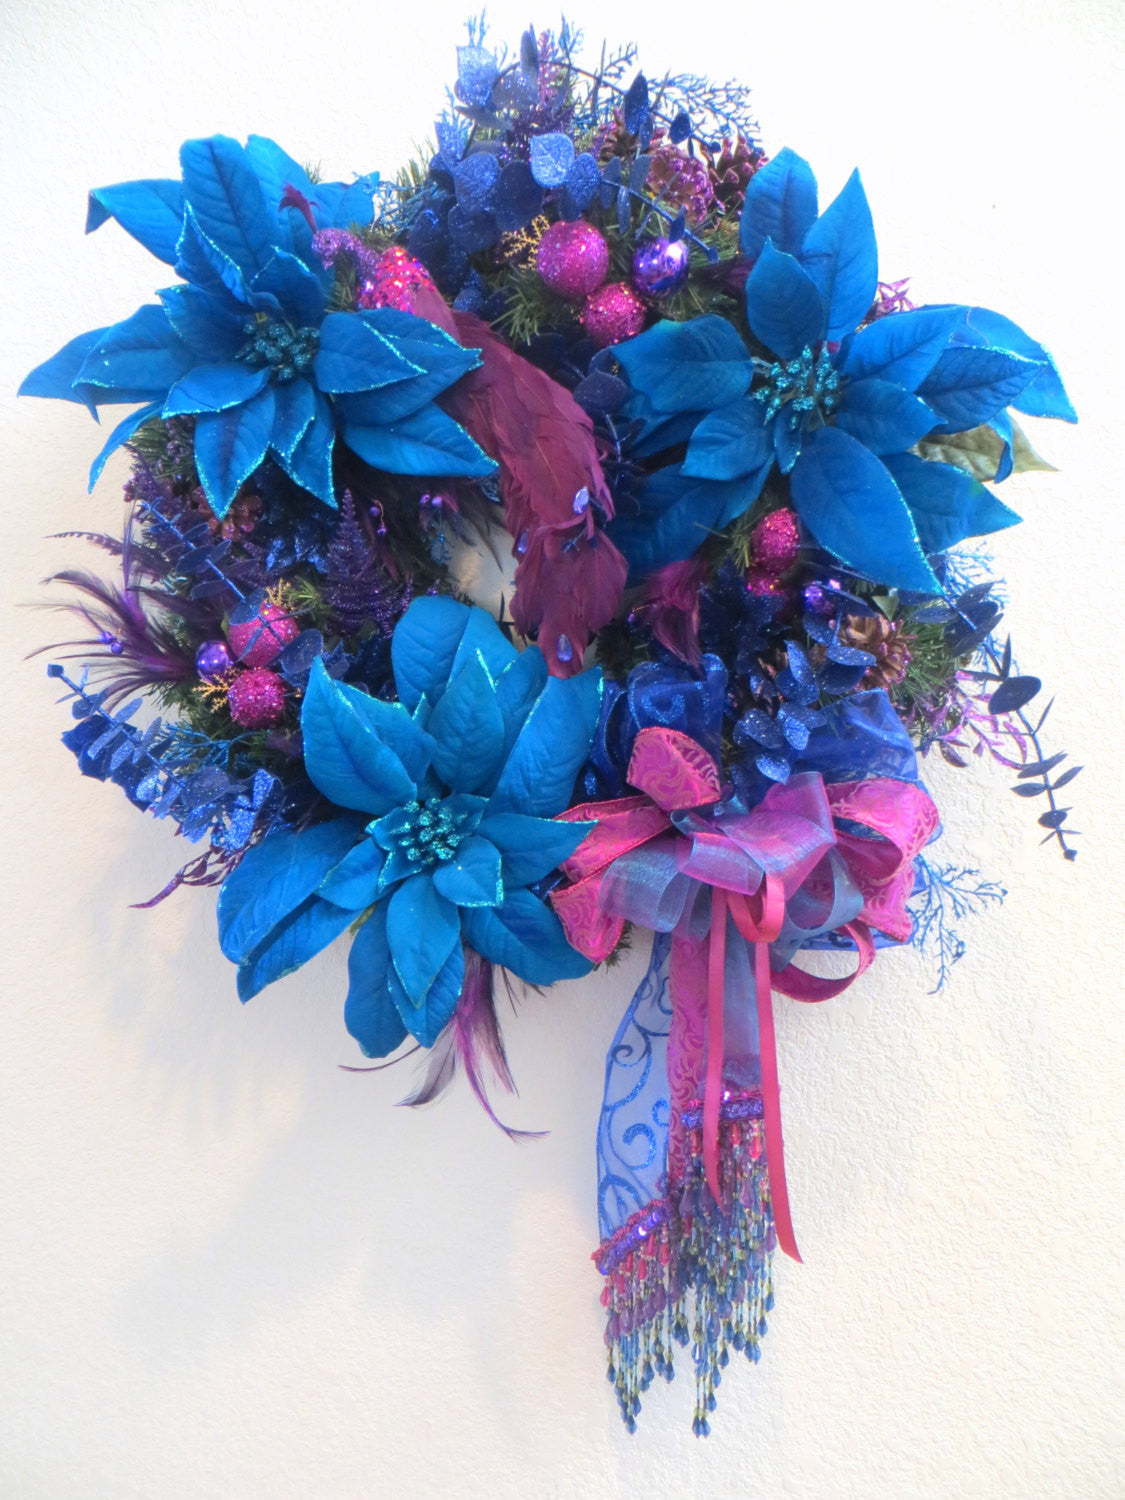 Peacock Holiday Christmas Wreath in Blue Turquoise, Amethyst Purple and Violet Pink with Elegant Beaded Fringe &Fancy Trim Asymetrical Bow - Odyssey Creations